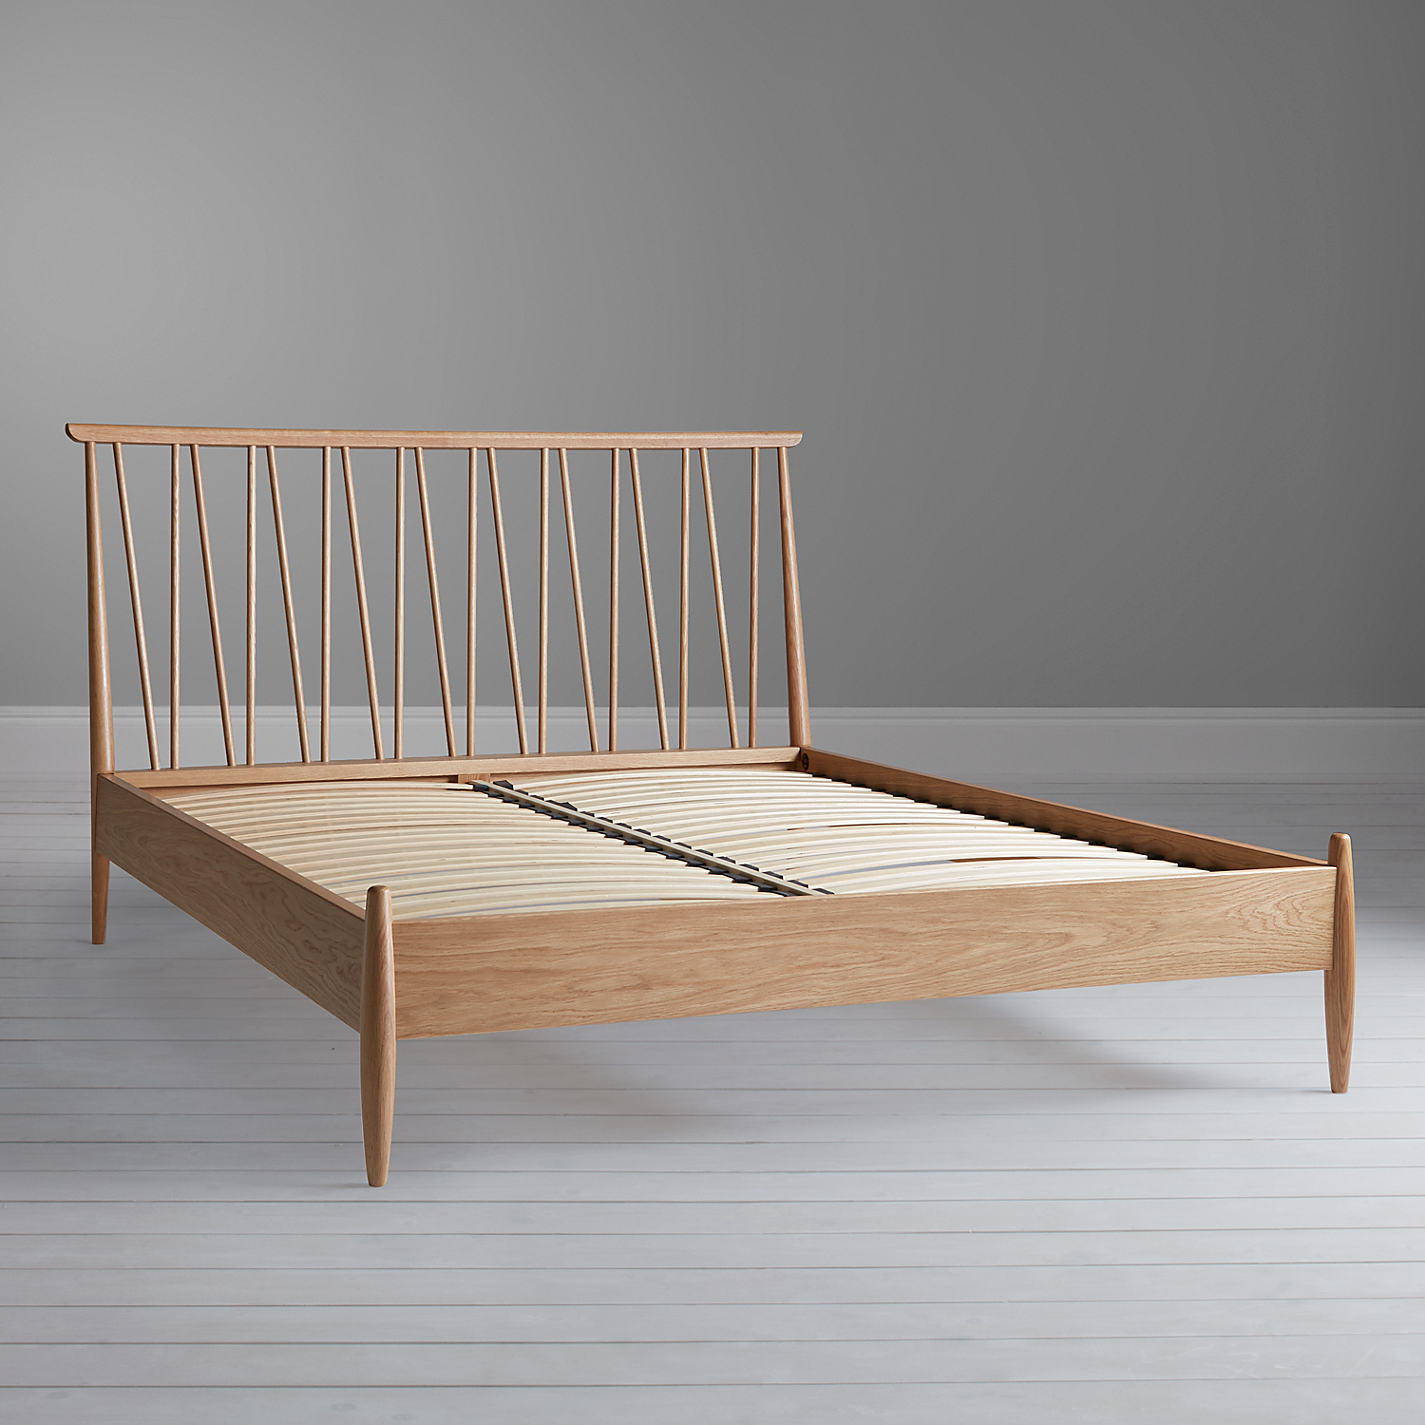 Ercol bedroom furniture john lewis for Furniture john lewis